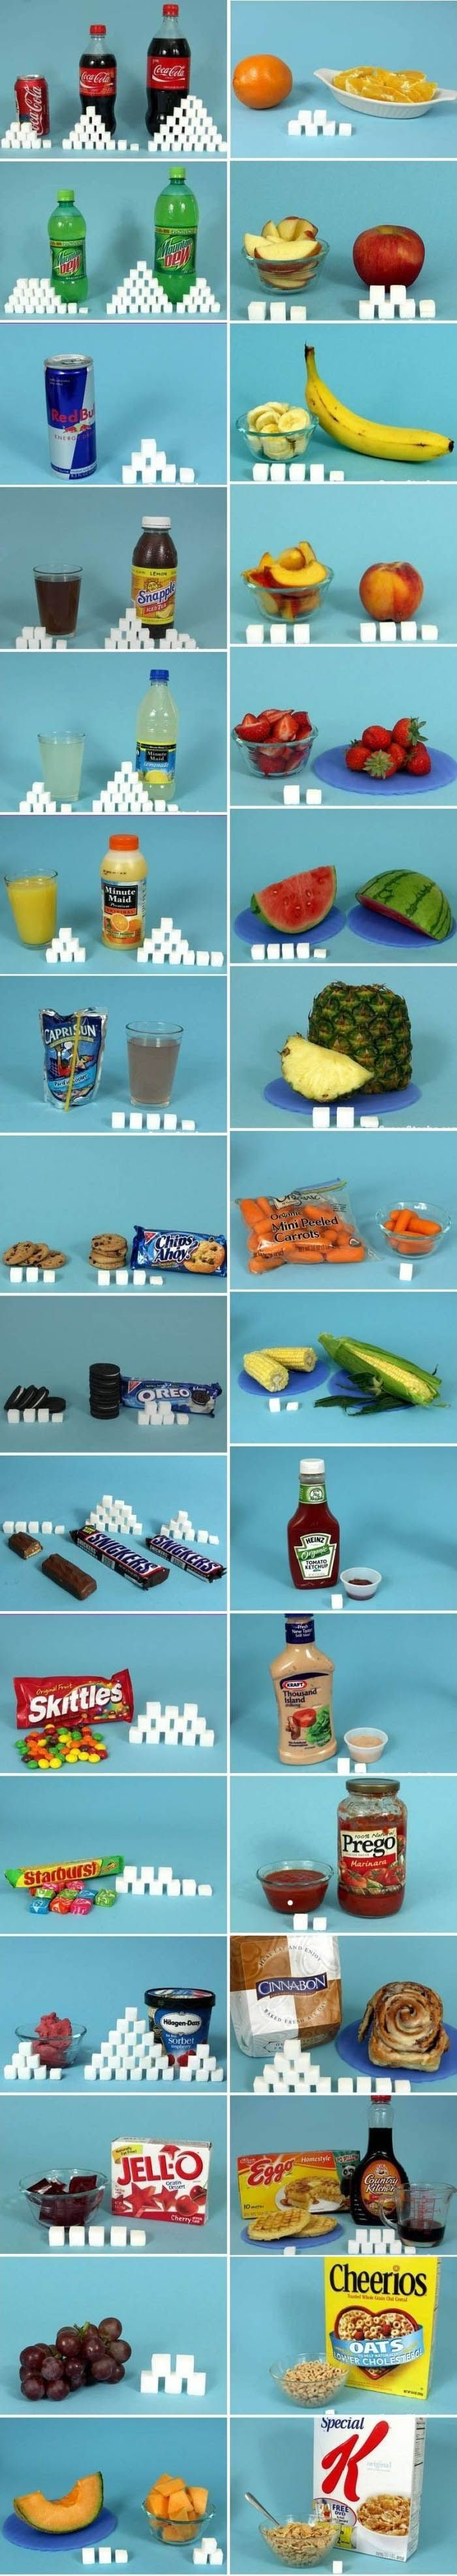 How much sugar are you consuming ? - With Bonus: Healthy foods that keep you full http://whatisplexus.com